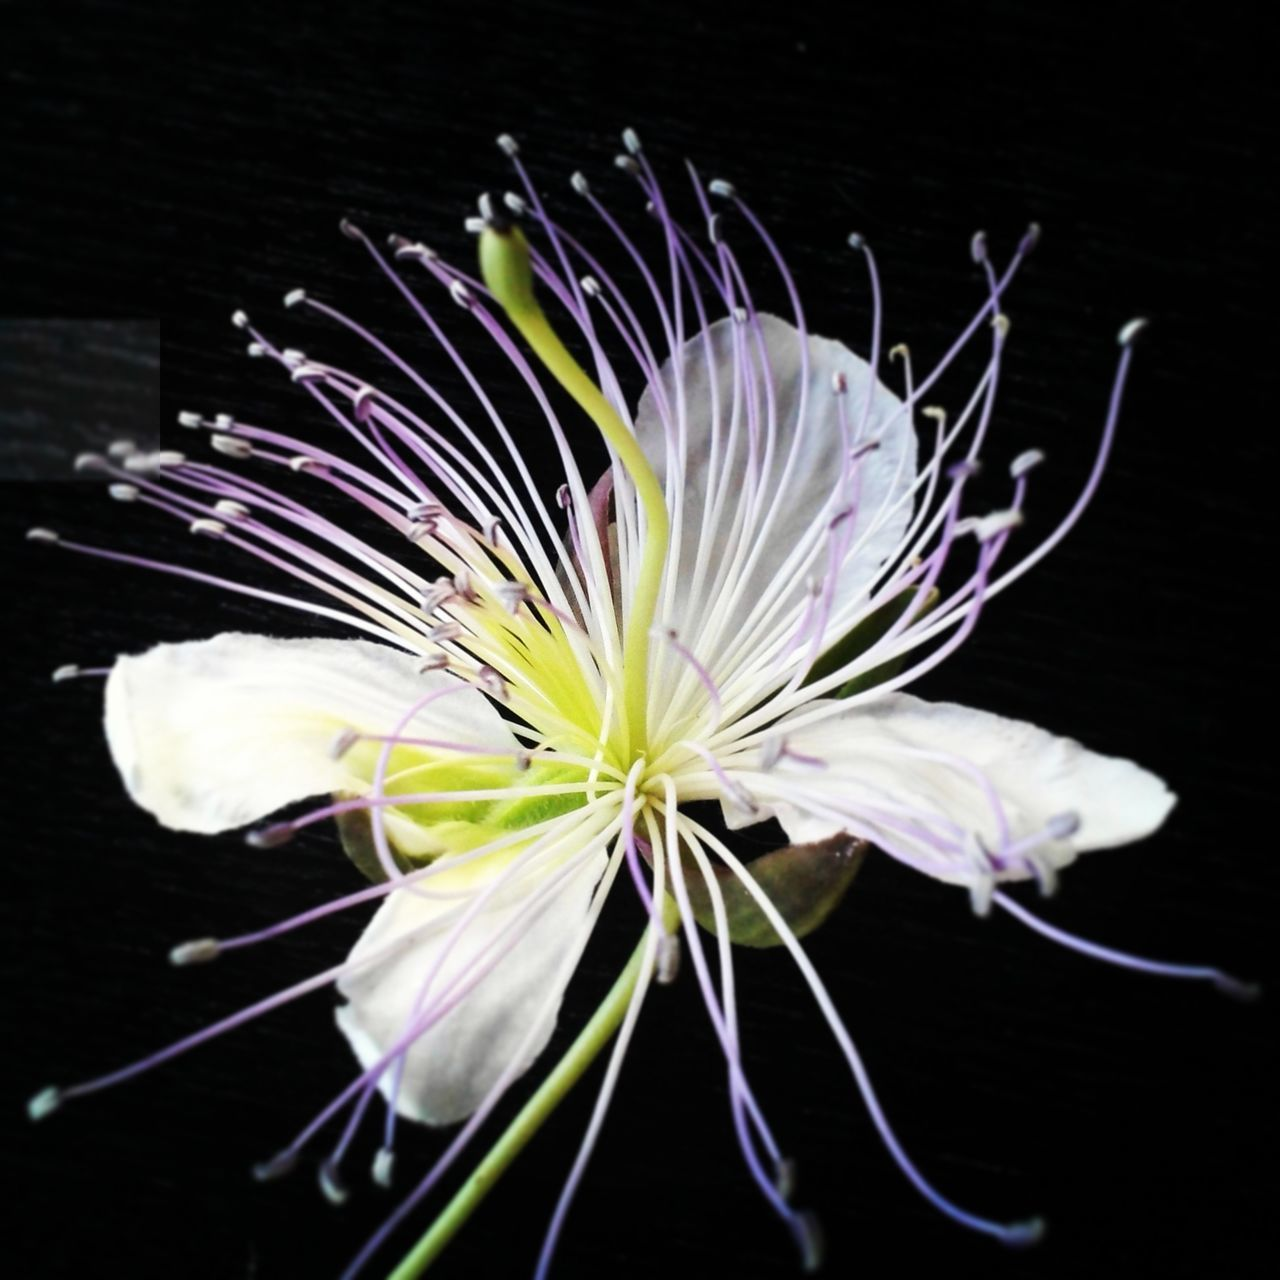 Flower of white Capparis Spinosa, caper. Naturephotography Nature_collection Capparisspinosa Capers Flowers_collection Naturallife Vegetarian Food Check This Out Nature's Diversities